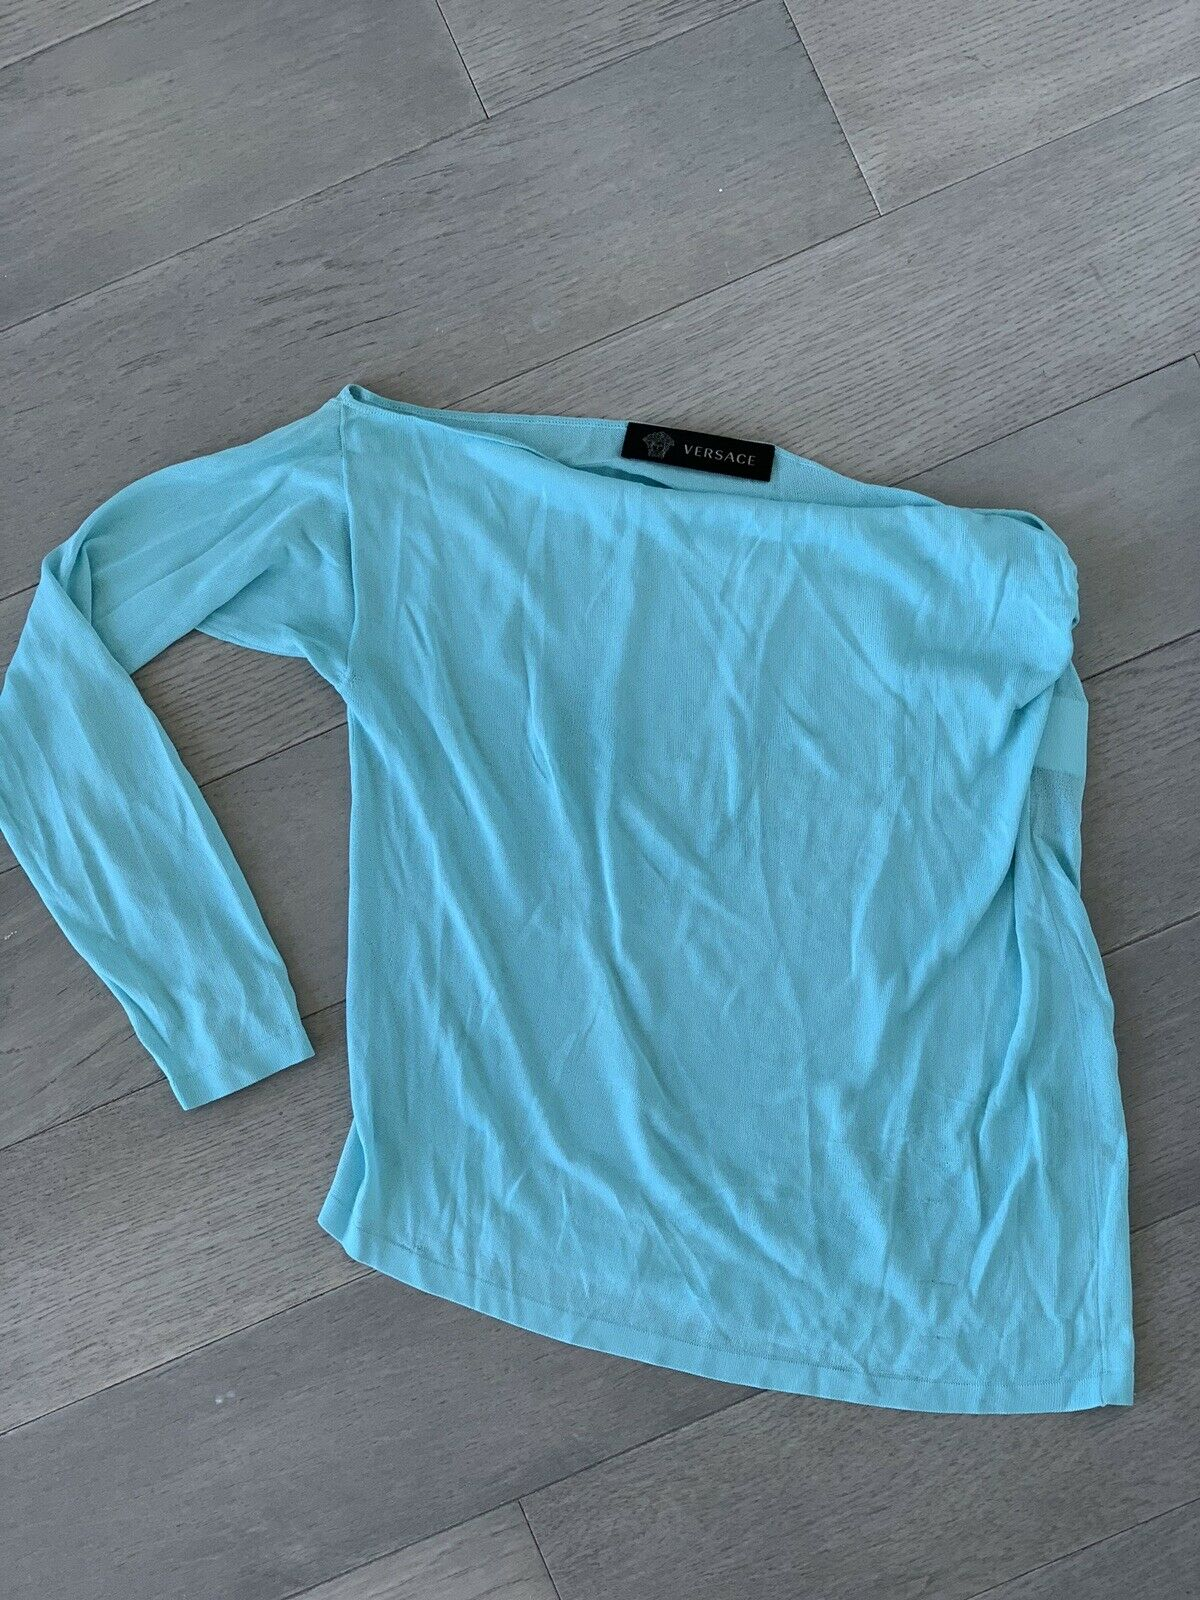 Versace Blau Off Shoulder Top 38